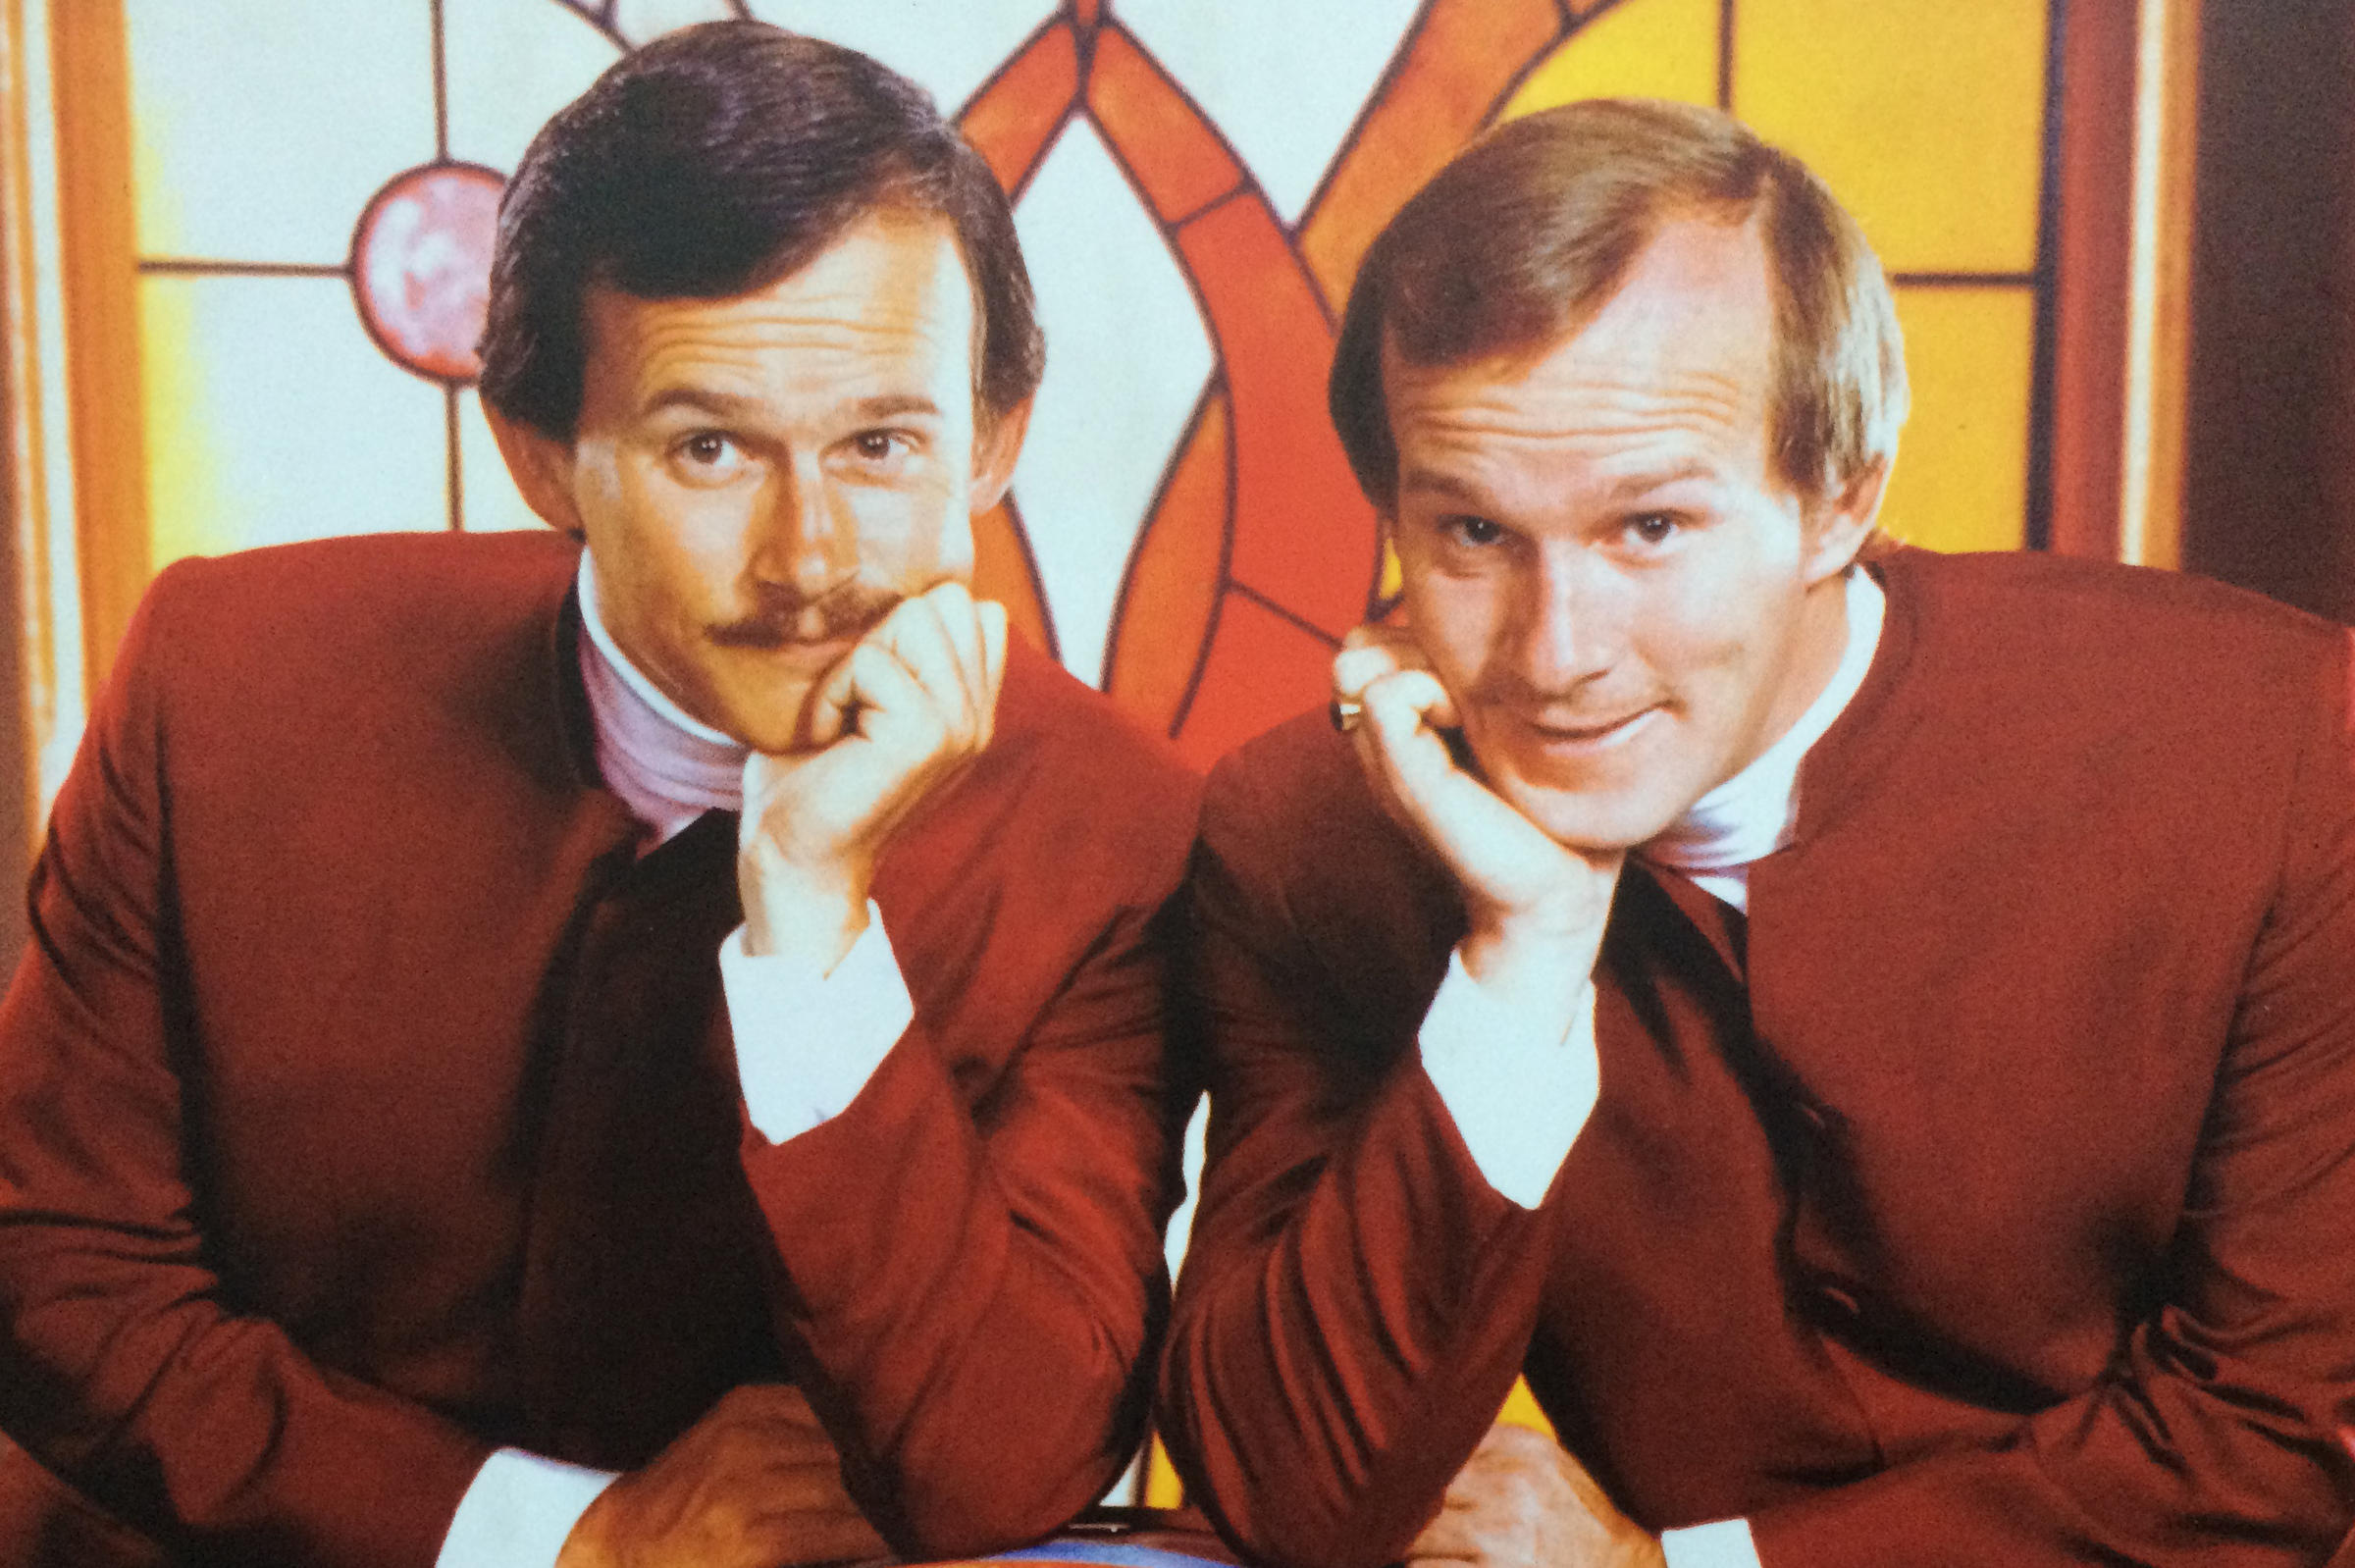 """Five-0"" ends, Smothers Brothers (via reruns) return"